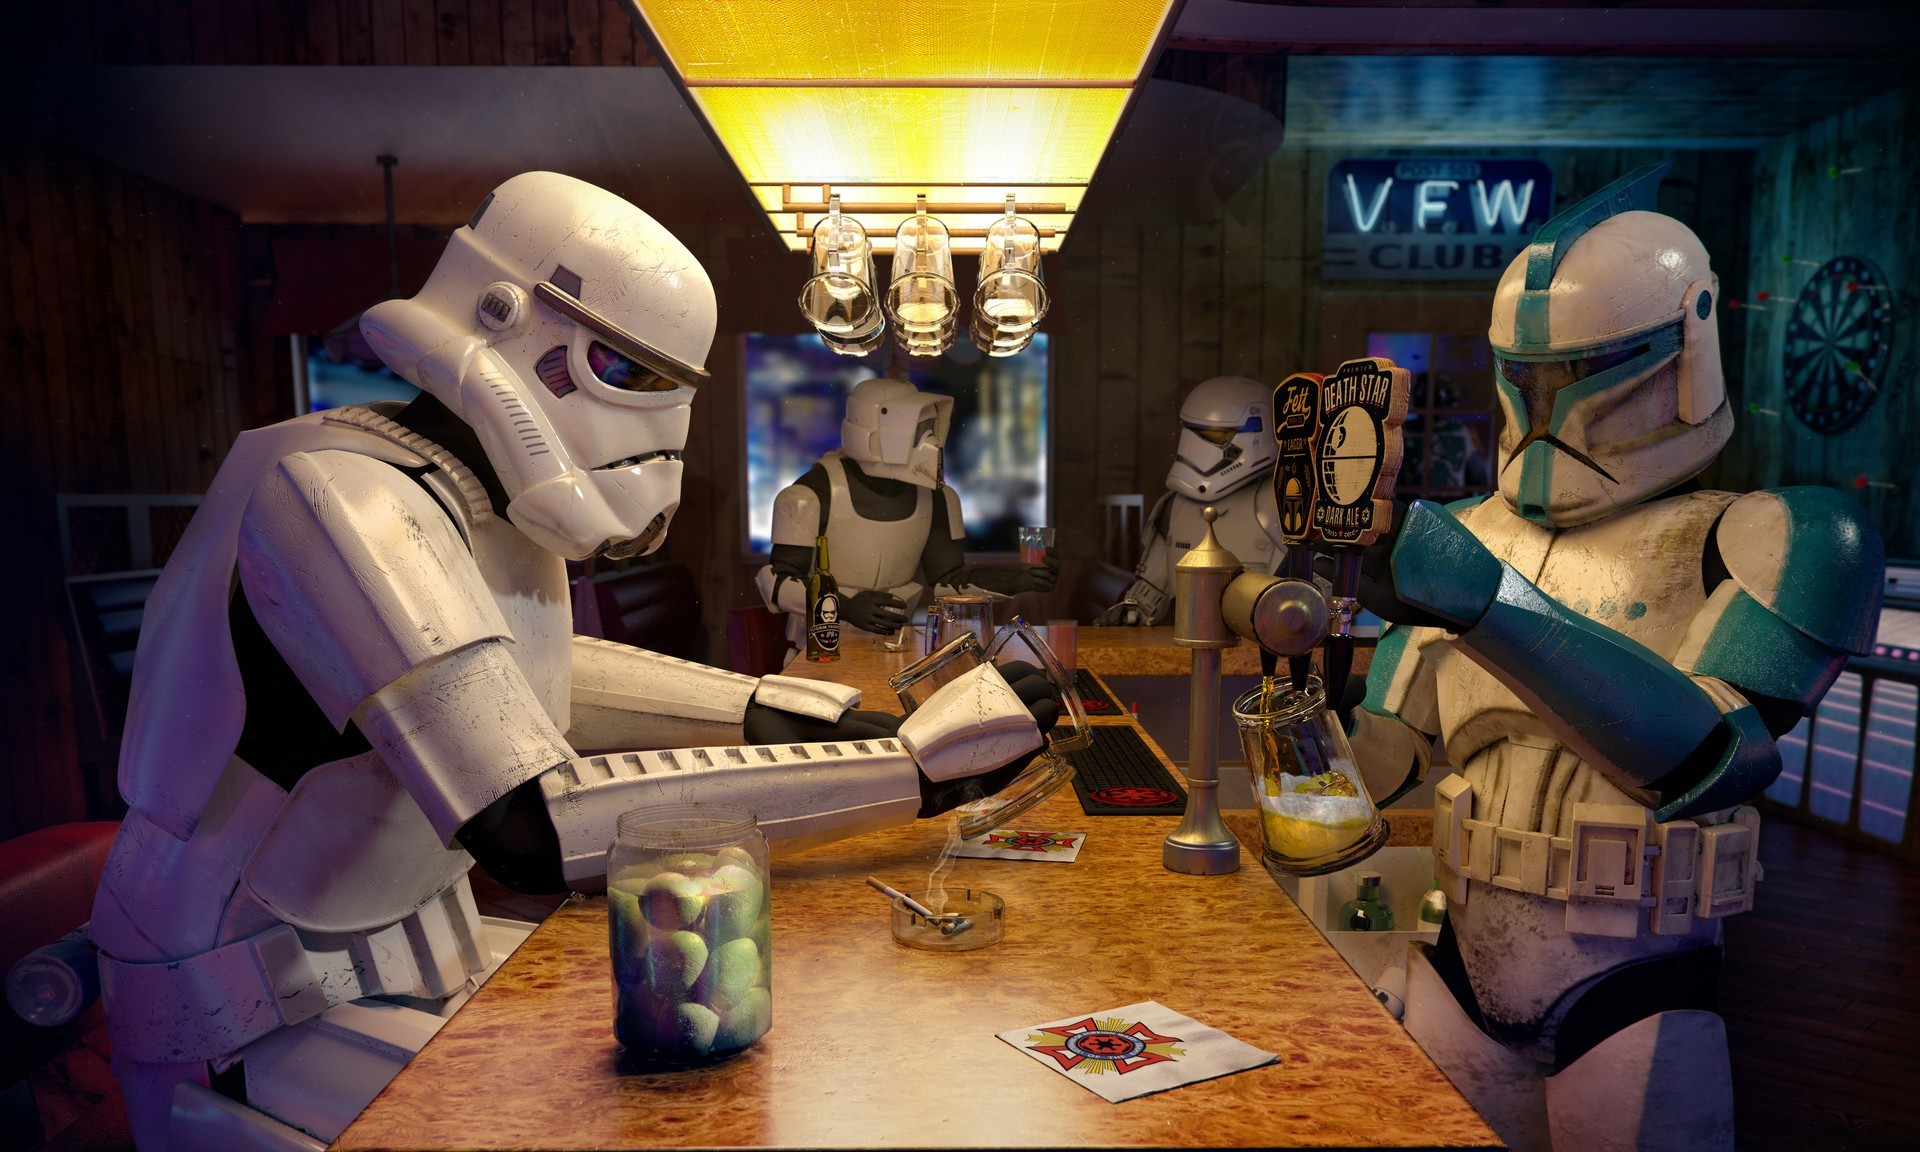 130 Clone Trooper Android Iphone Desktop Hd Backgrounds Wallpapers 1080p 4k 1920x1152 2020